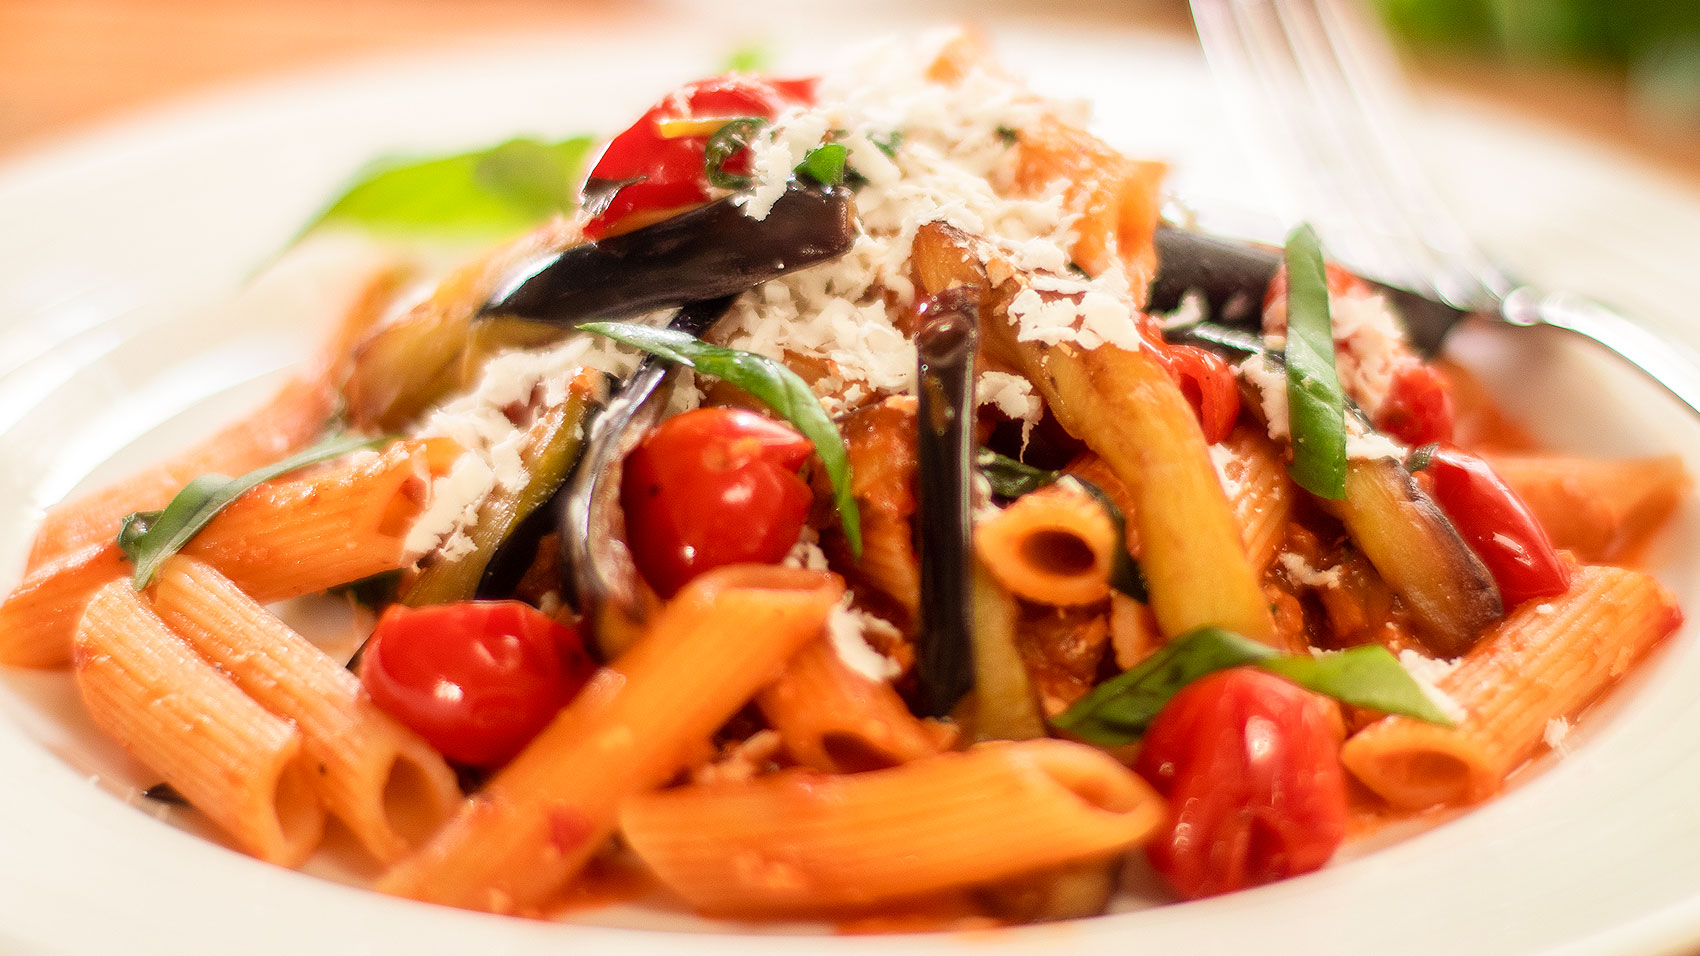 Pasta Alla Norma Easy Meals With Video Recipes By Chef